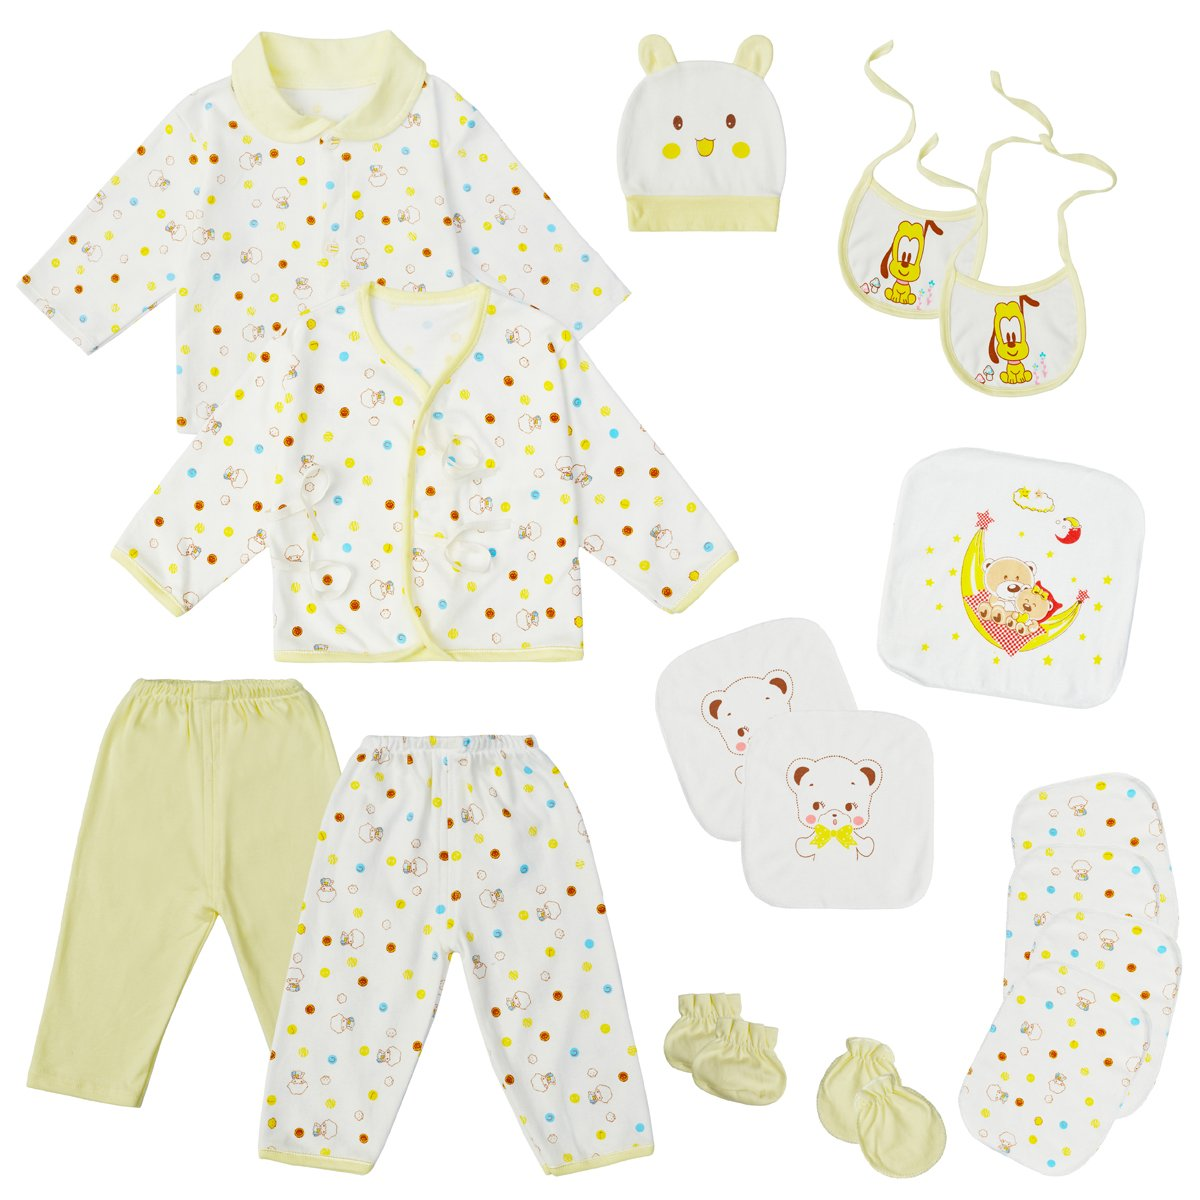 0-3 Months Baby Girl Boy Clothes Newborn Layette Set Infant Essentials Outfits Banjvall BJ_002_Blue